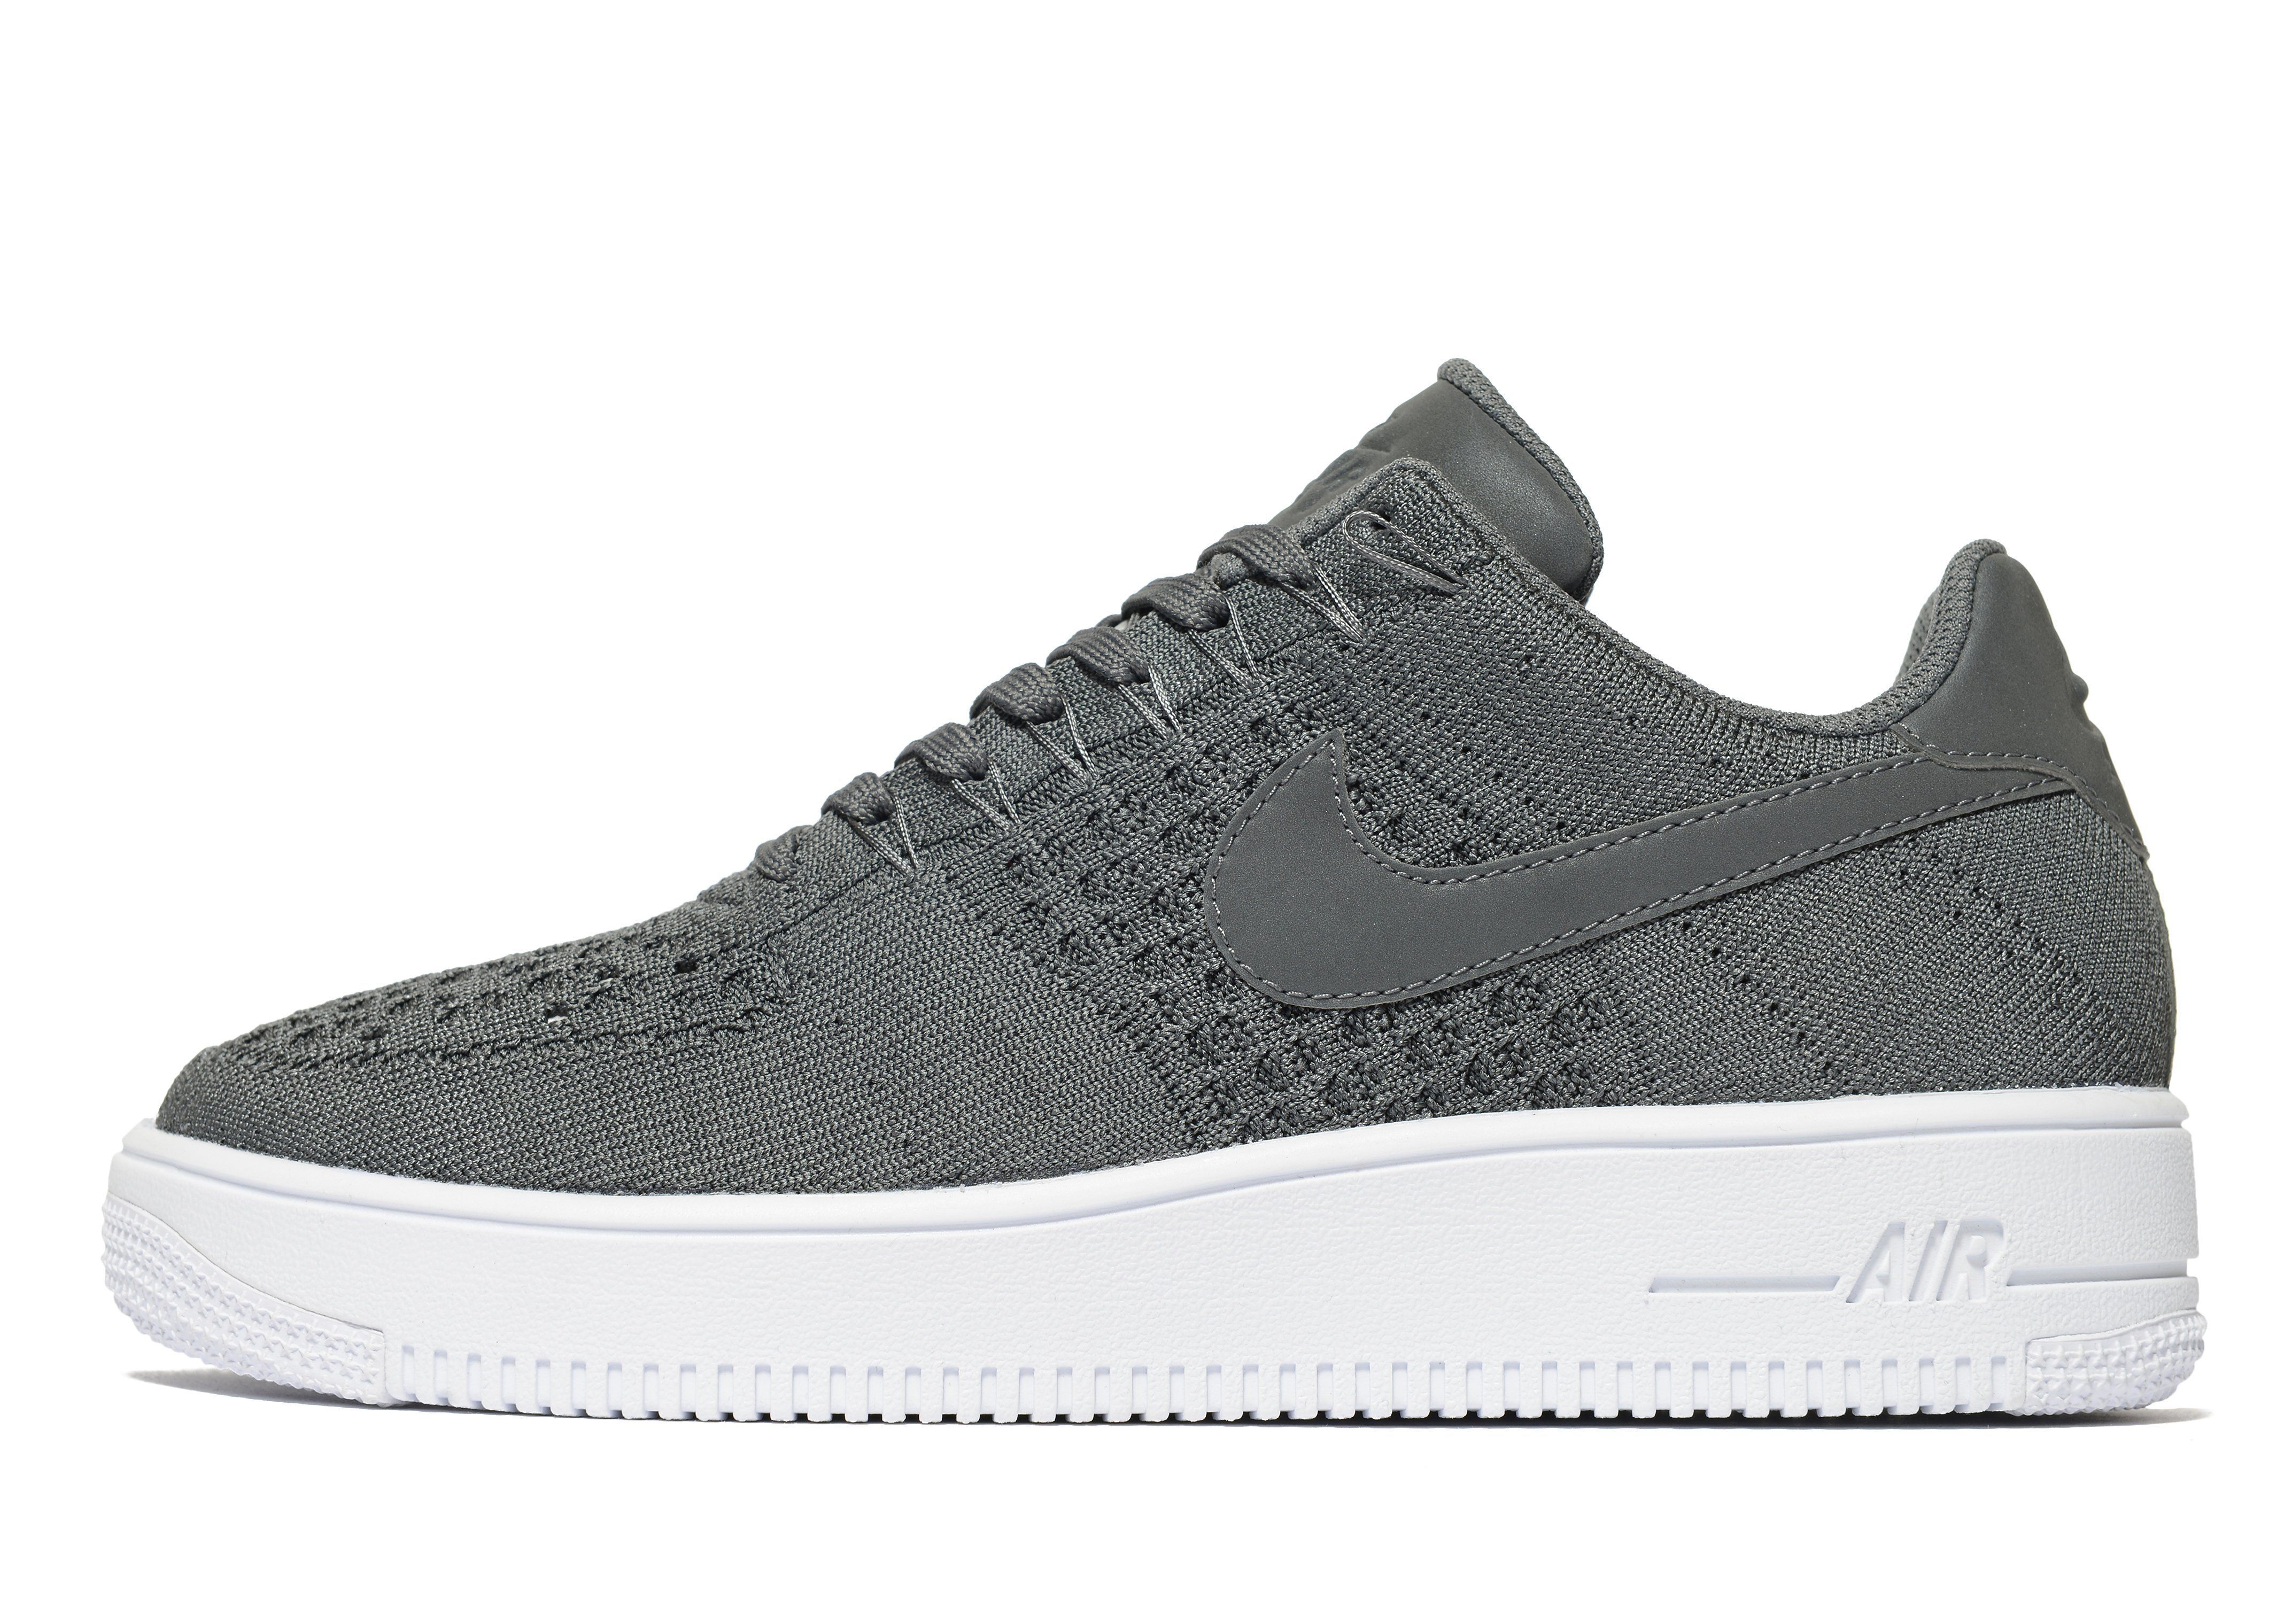 Nike Air Force 1 Flyknit Shop online for Nike Air Force 1